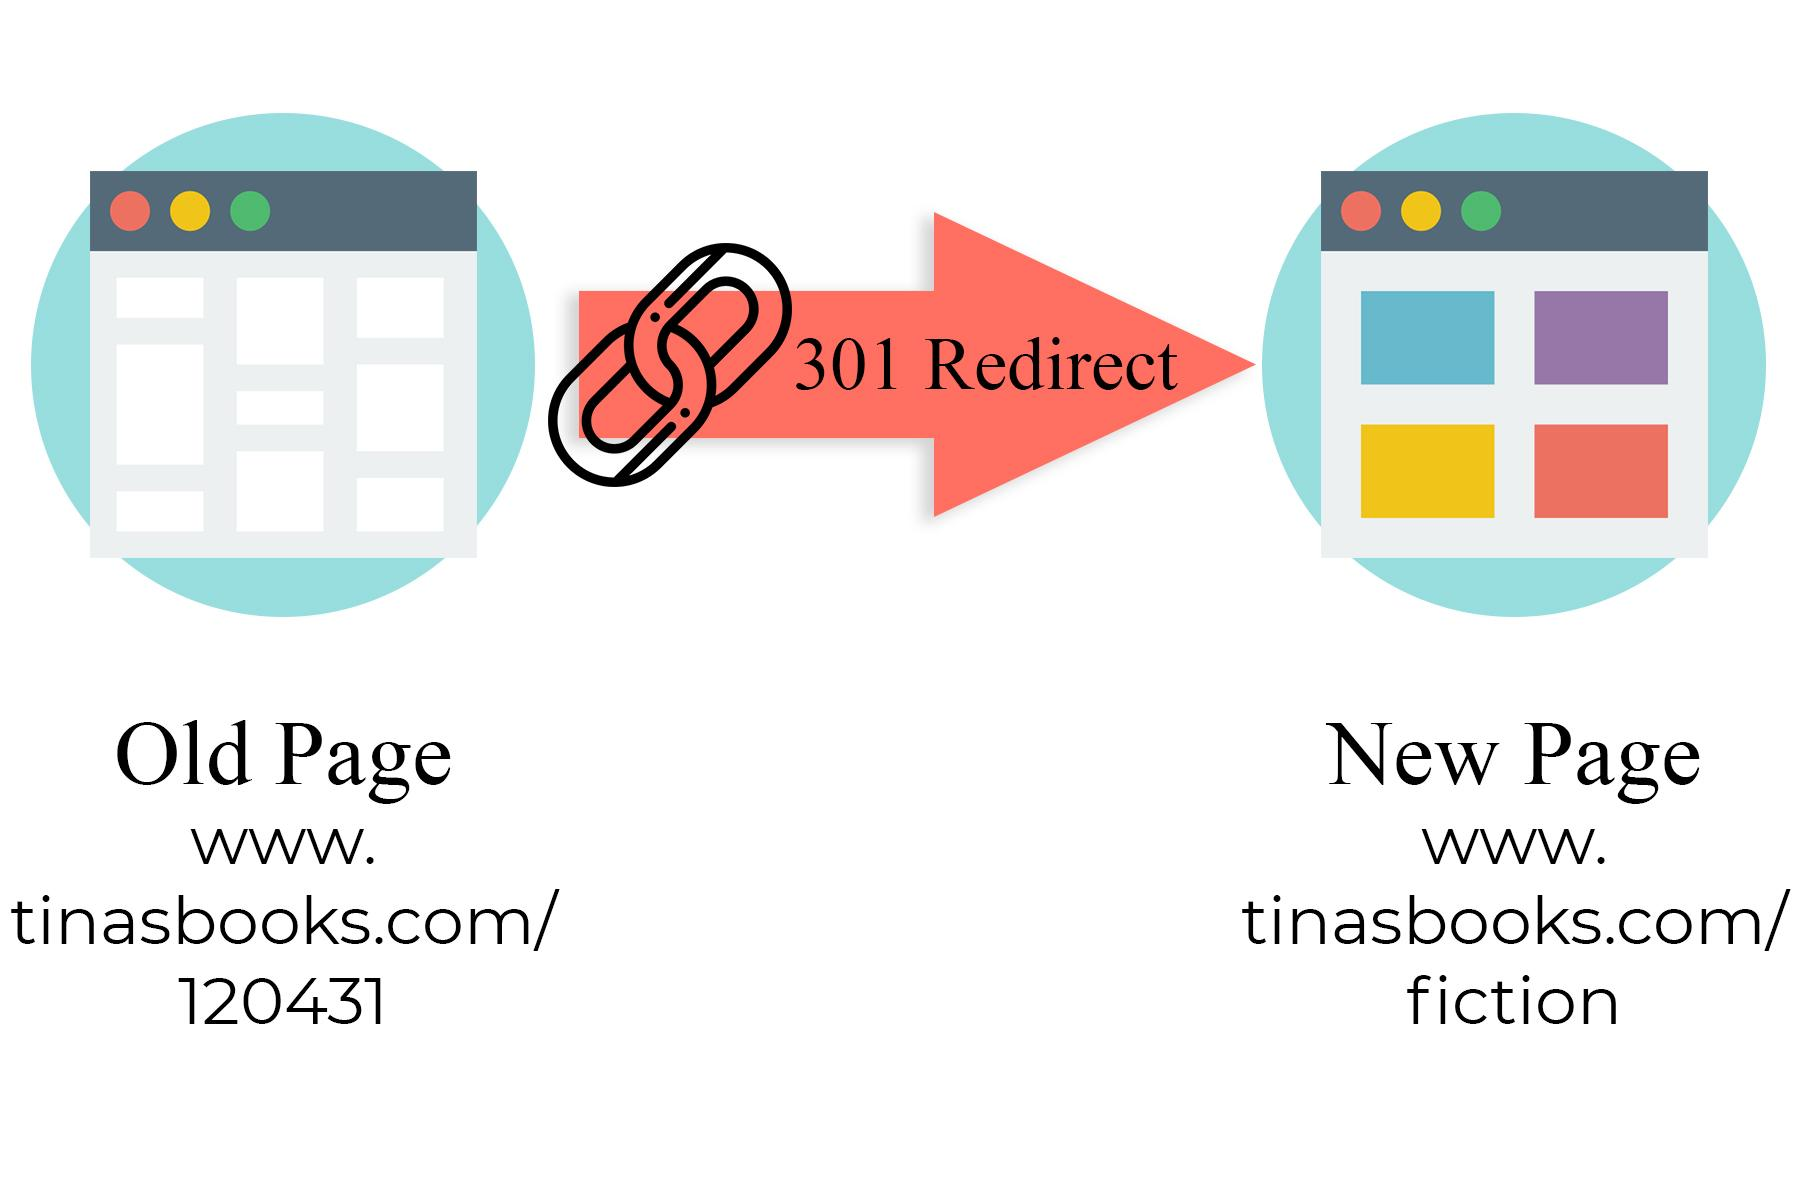 URLs and click depth can be improved with a 301 redirect